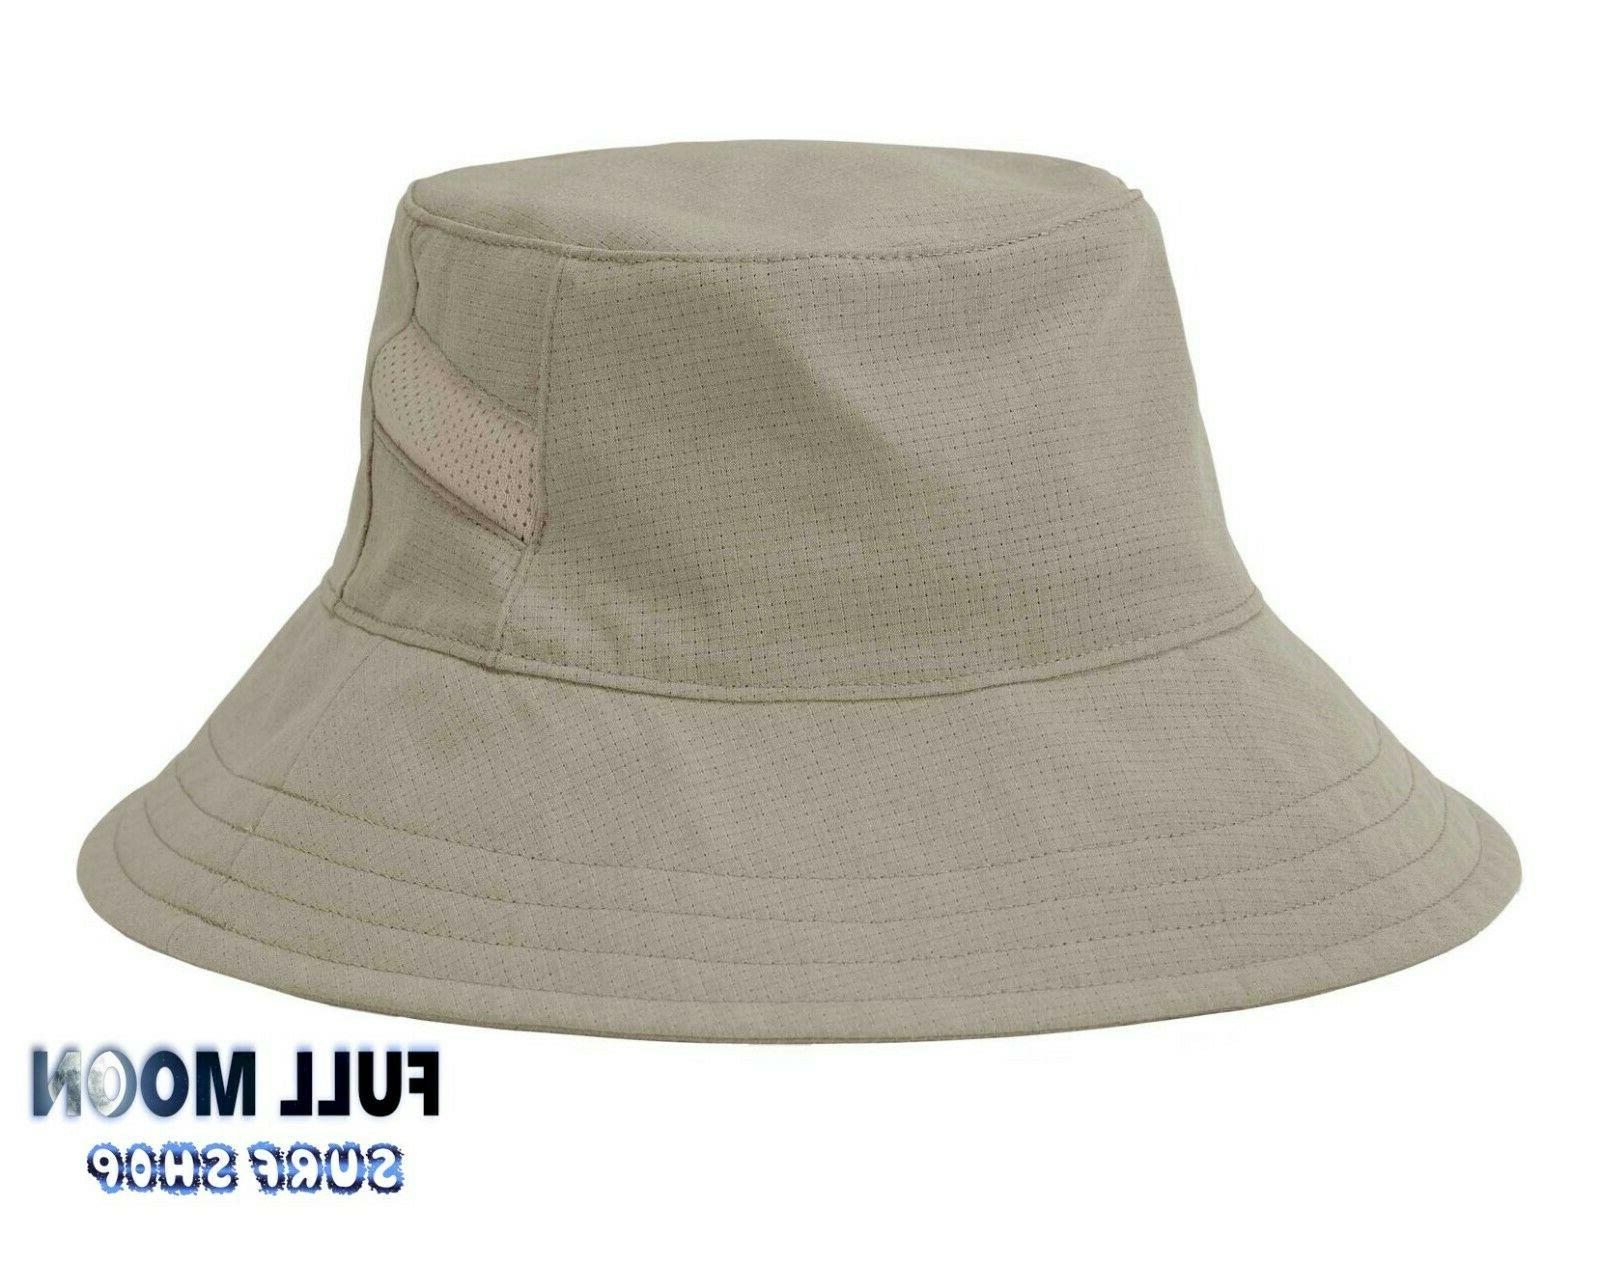 New Under ArmourVent Thermocline Bucket Cap